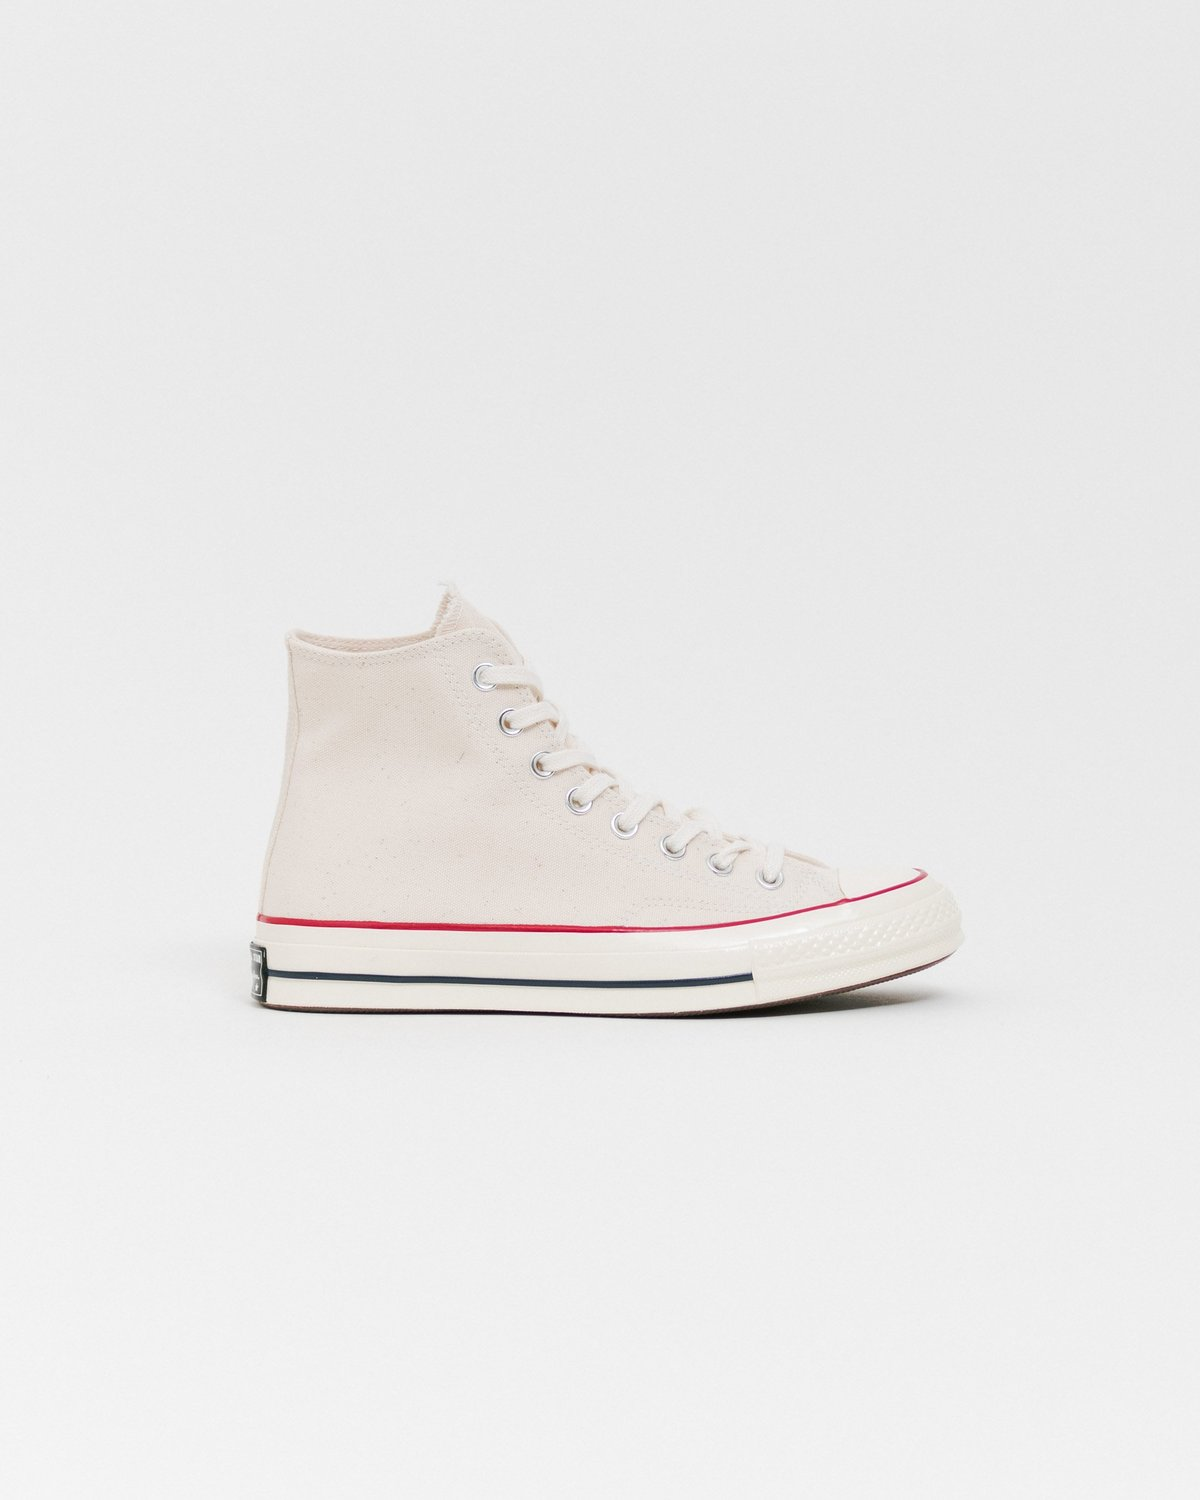 3e2415a6e00d21 Unisex Converse Chuck Taylor All Star ´70 Hi Shoes - Parchment ...